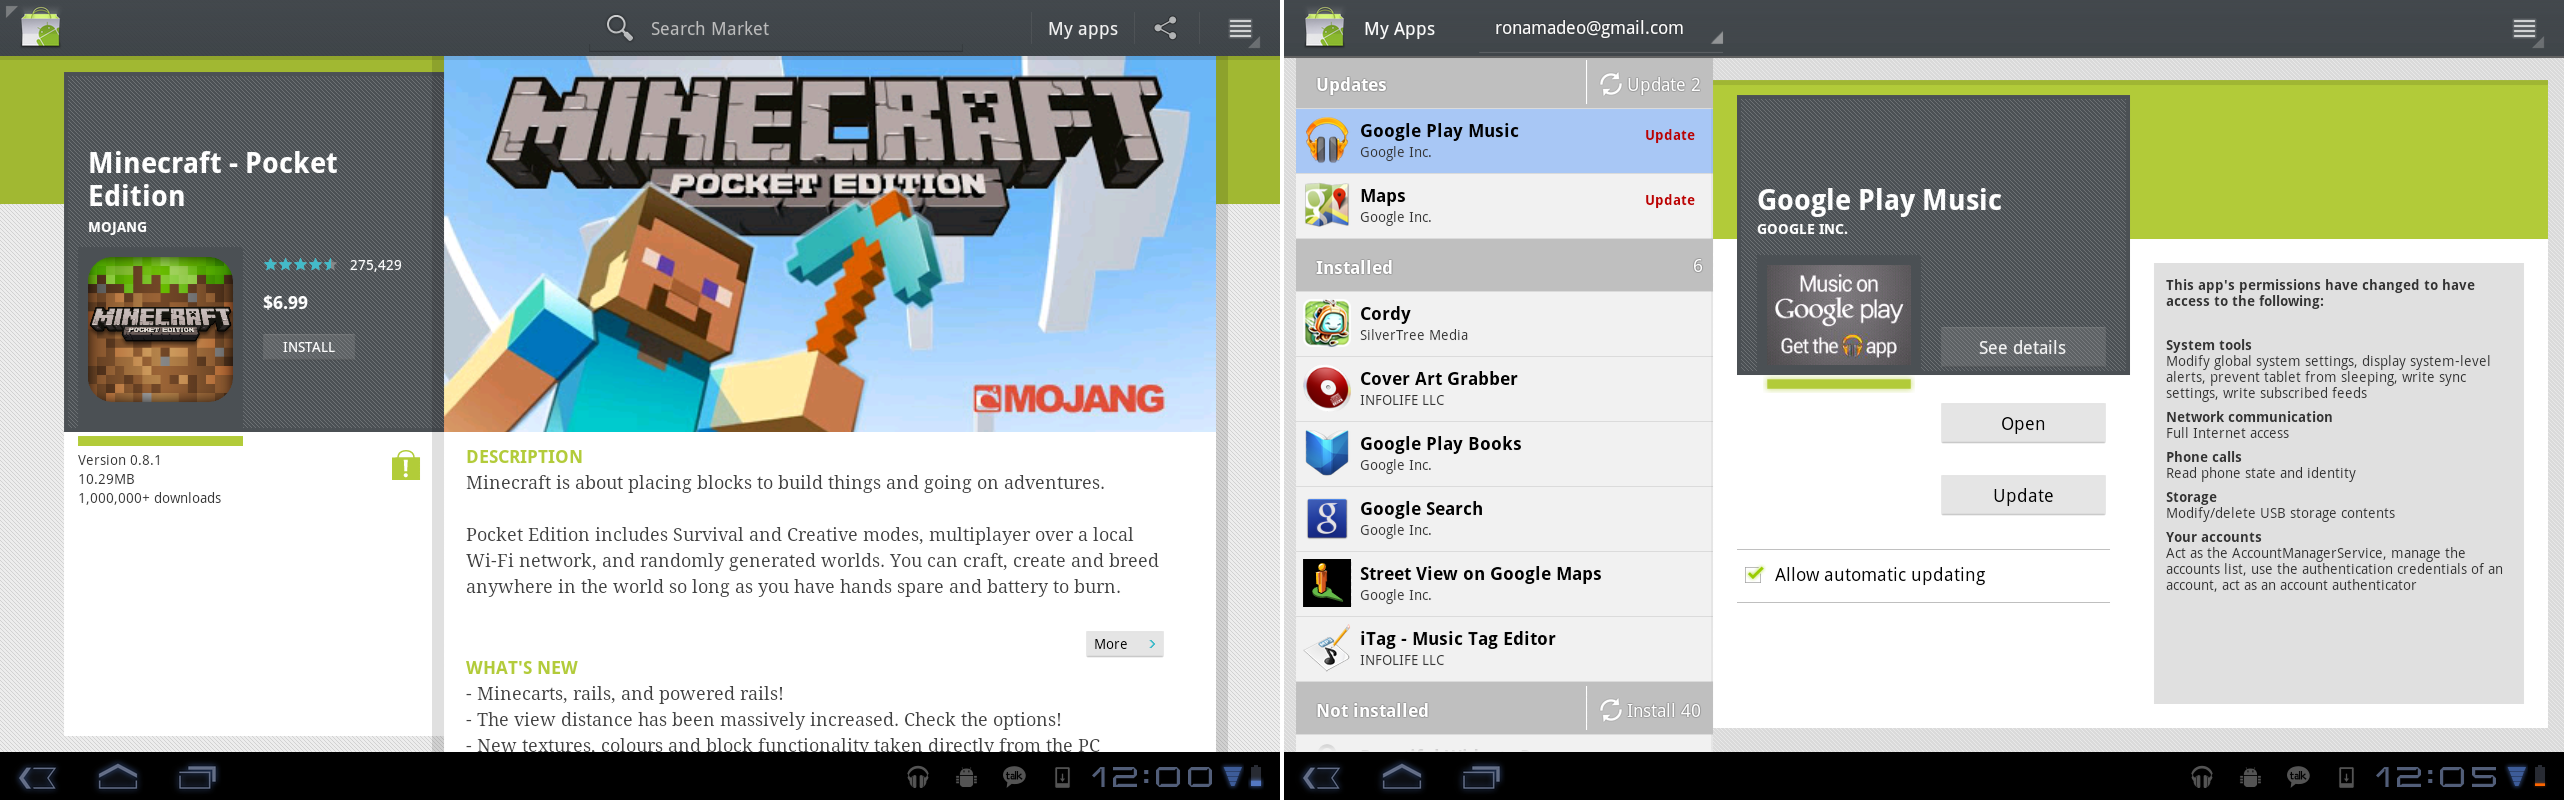 """The app page and """"My Apps"""" interface."""